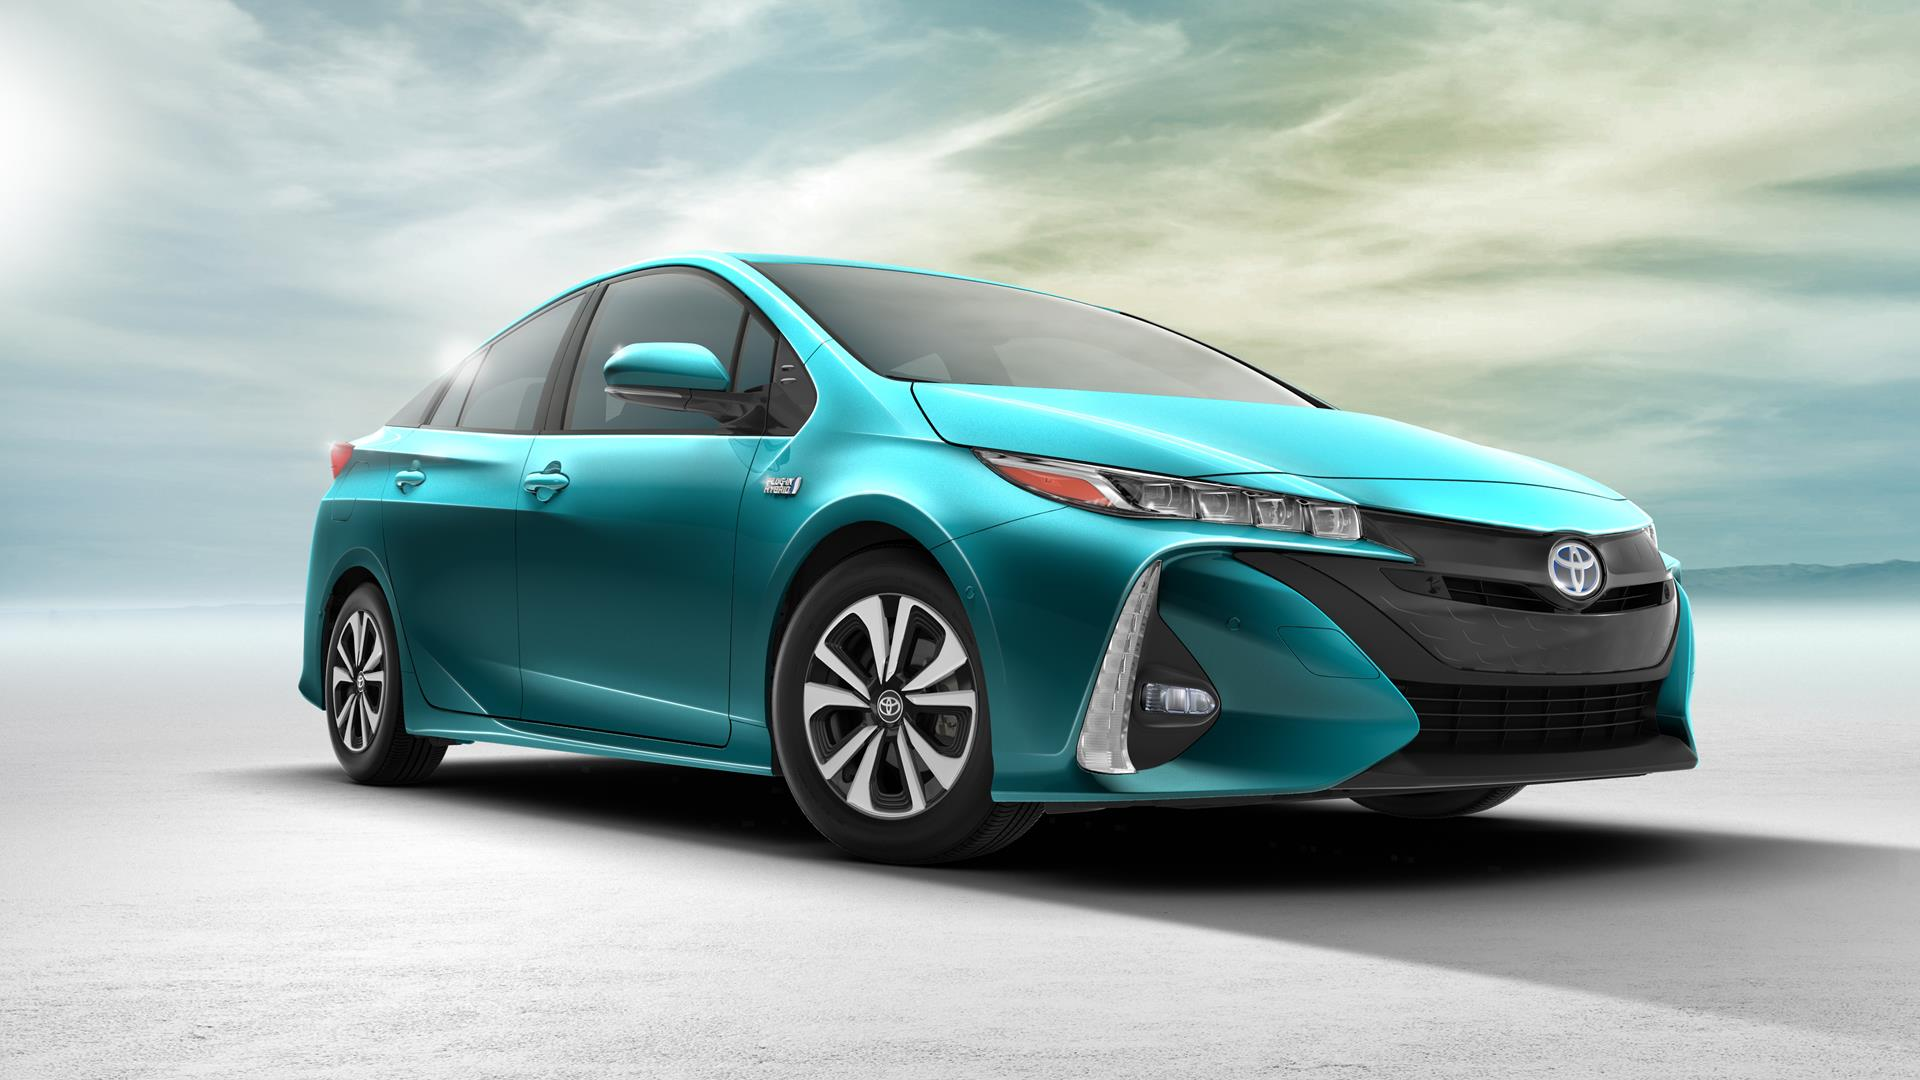 2016 Toyota Prius Prime Technical Specifications And Data Engine Dimensionechanical Details Conceptcarz